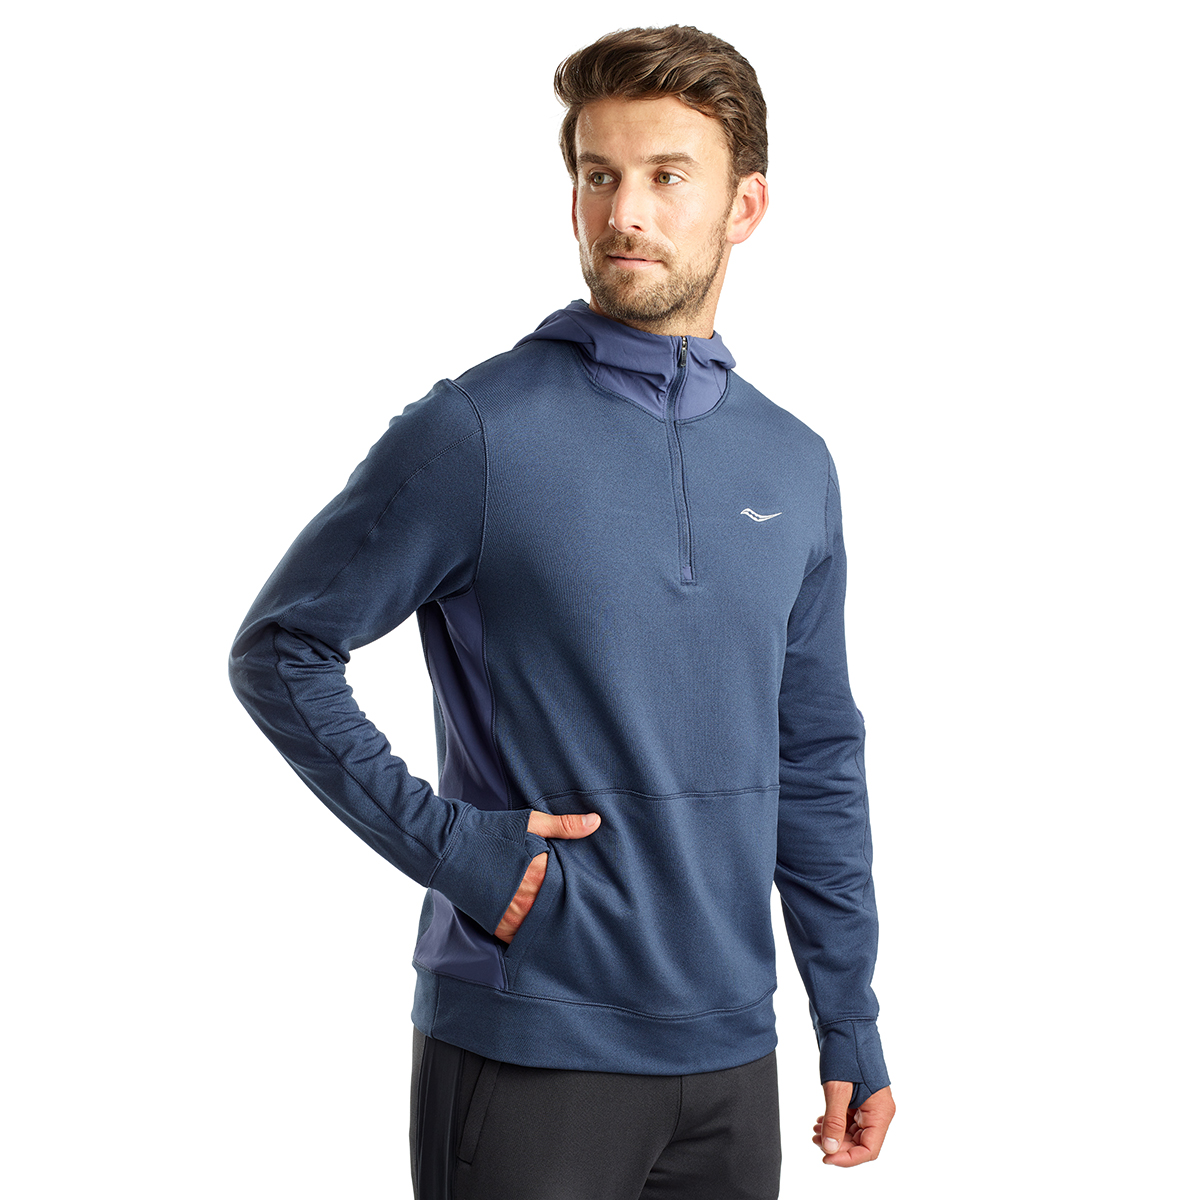 Men's Saucony Daybreak Hoodie  - Color: Mood Indigo - Size: L, Mood Indigo, large, image 1